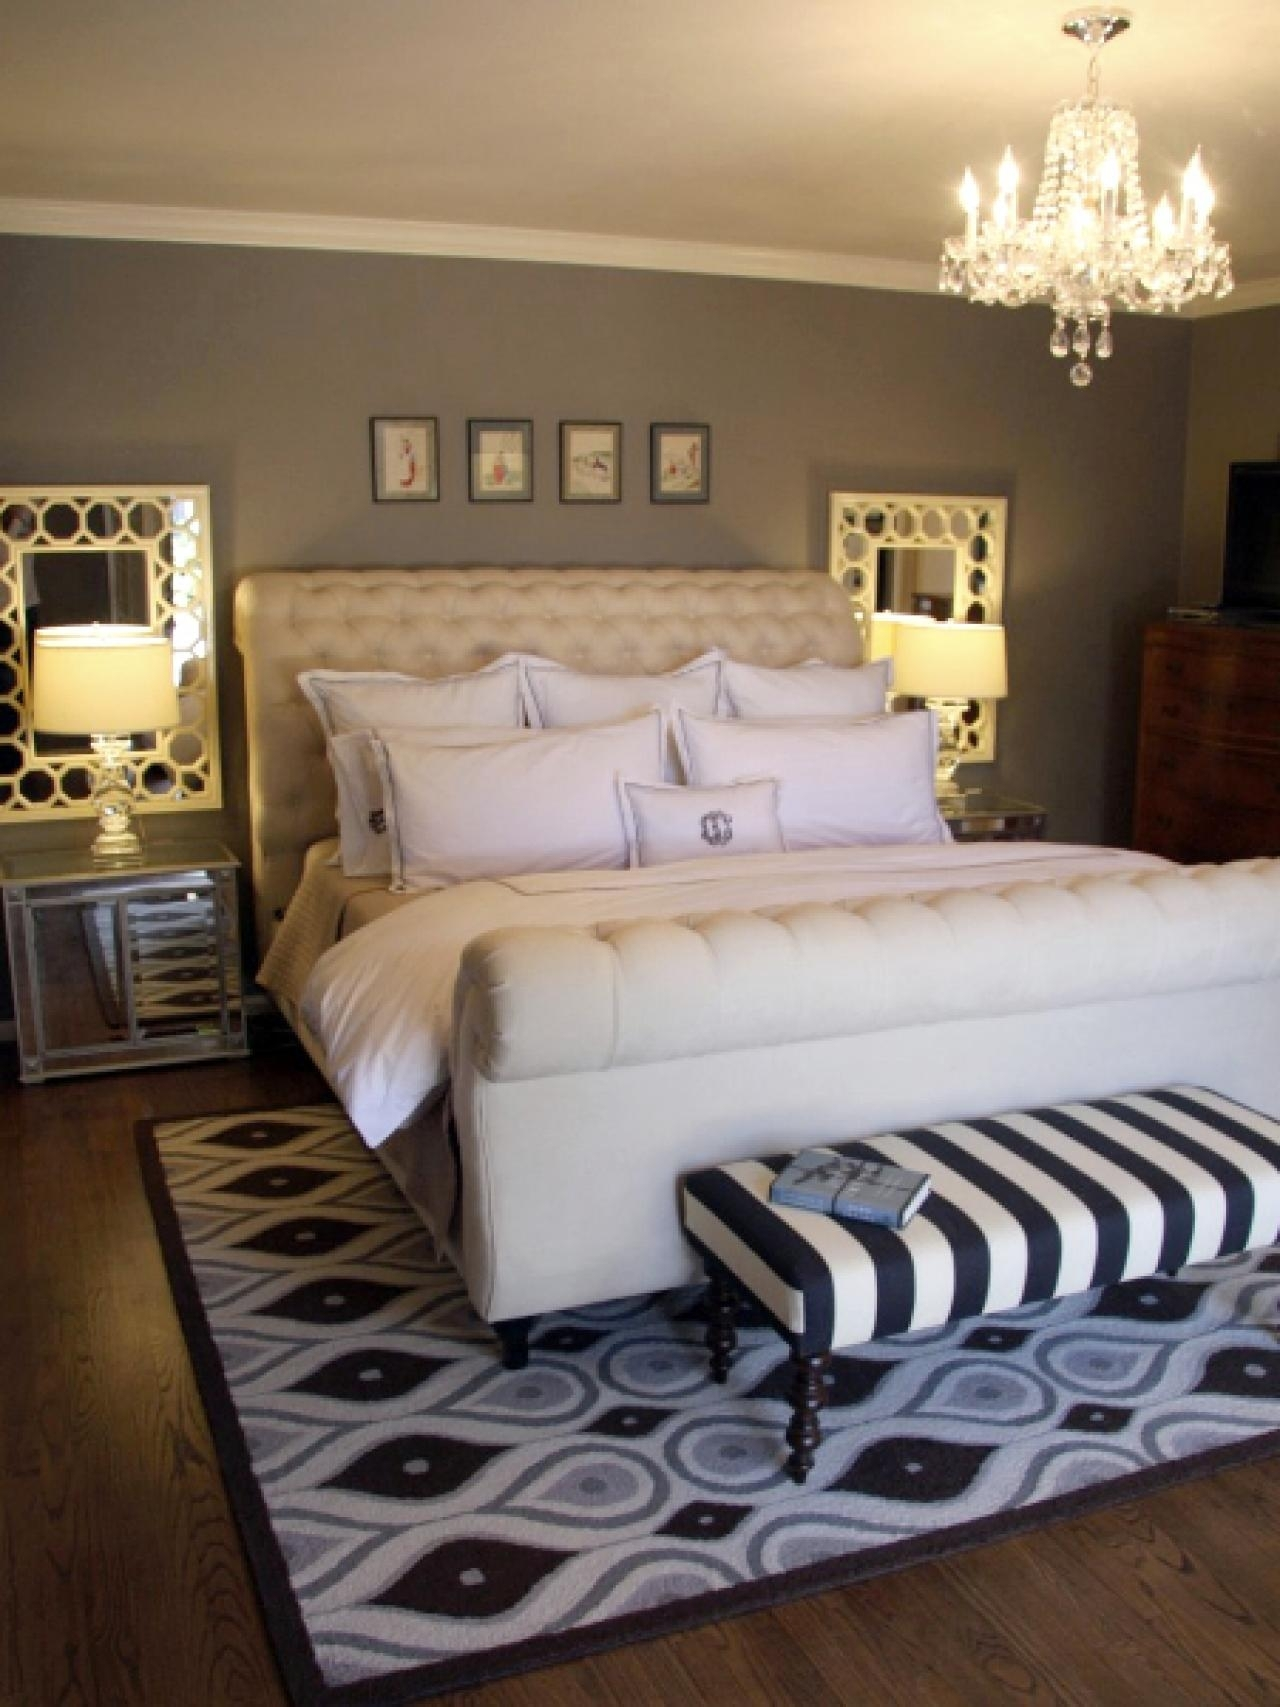 10 Trendy Fun Bedroom Ideas For Couples %name 2021